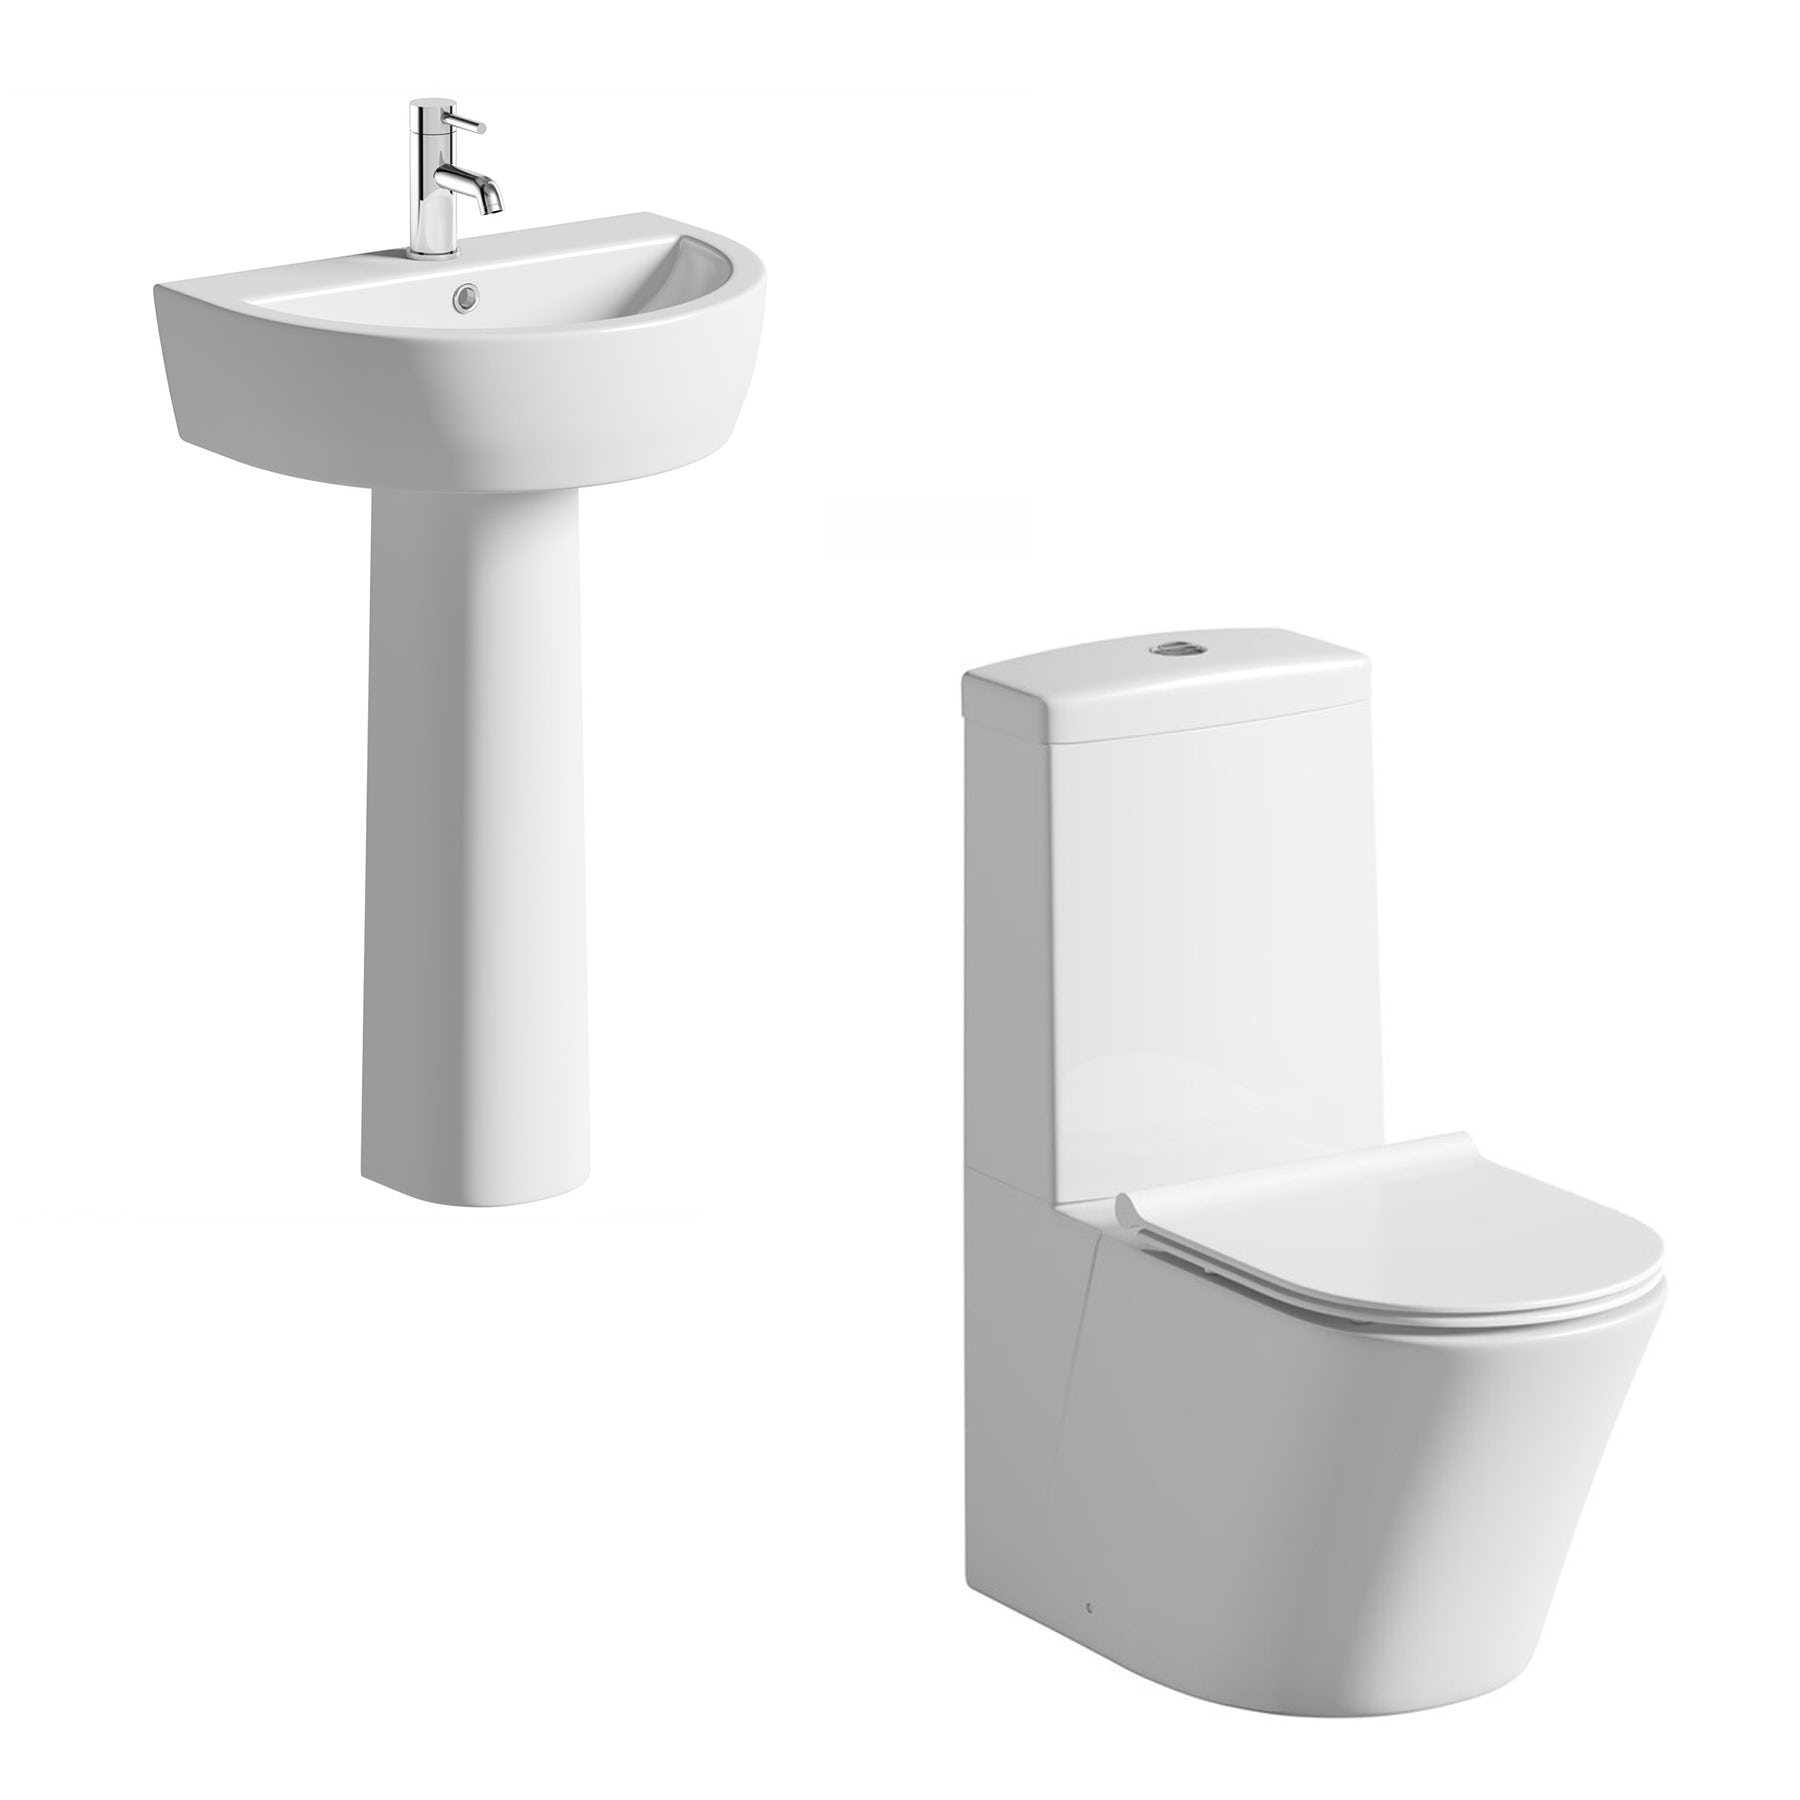 Mode Tate cloakroom suite with pedestal basin 550mm